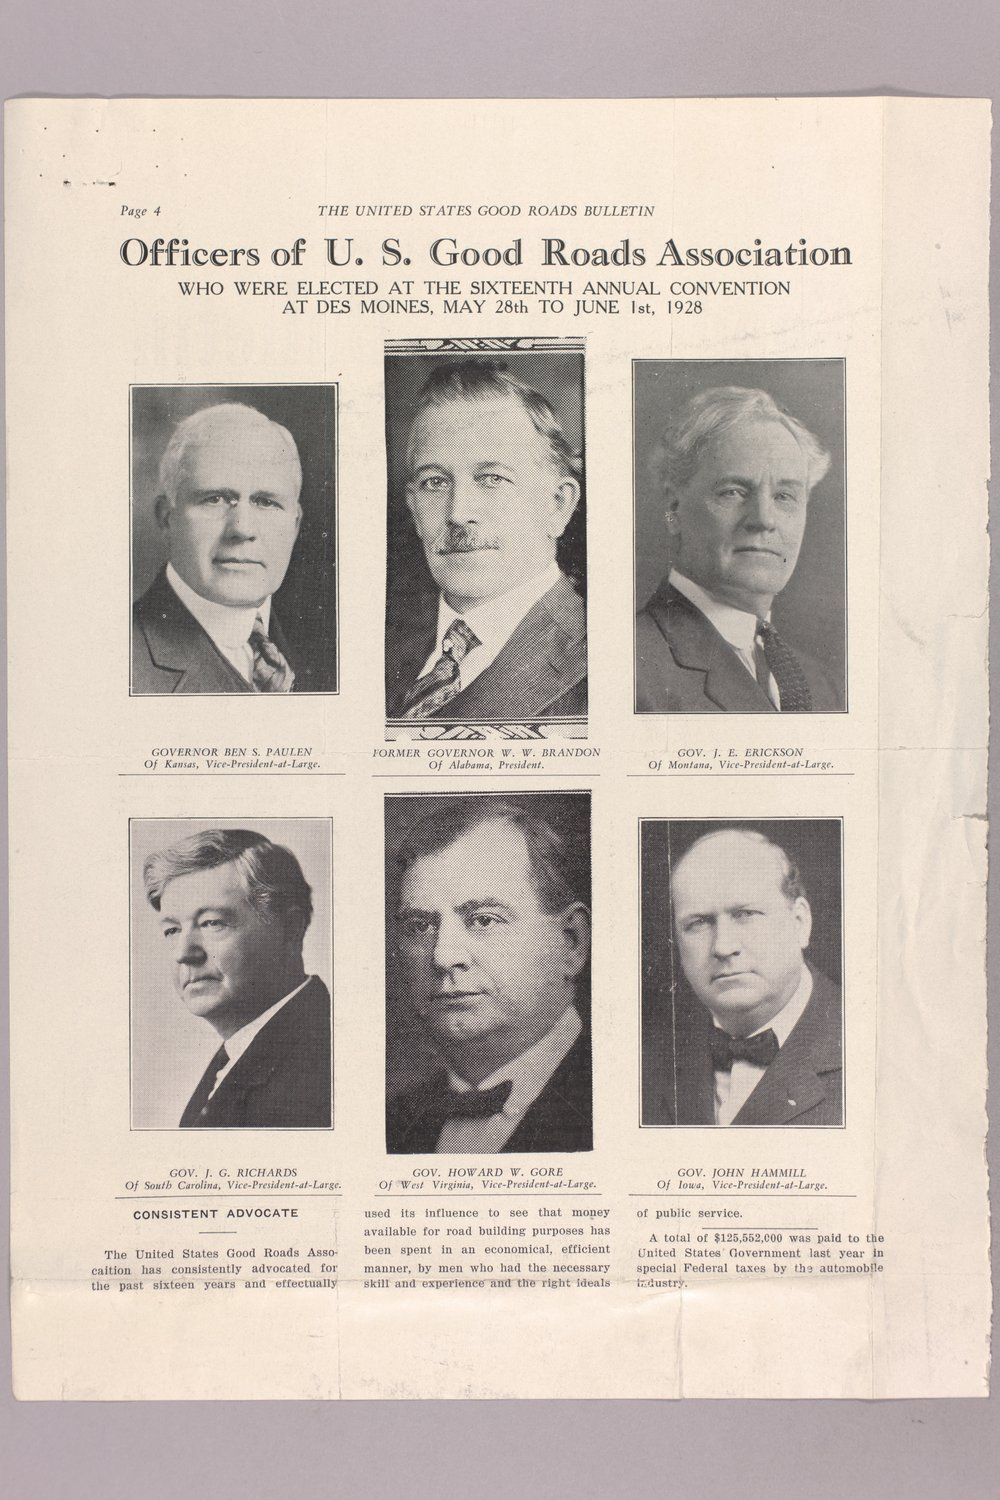 Governor Clyde M. Reed correspondence, honorary appointments - 8